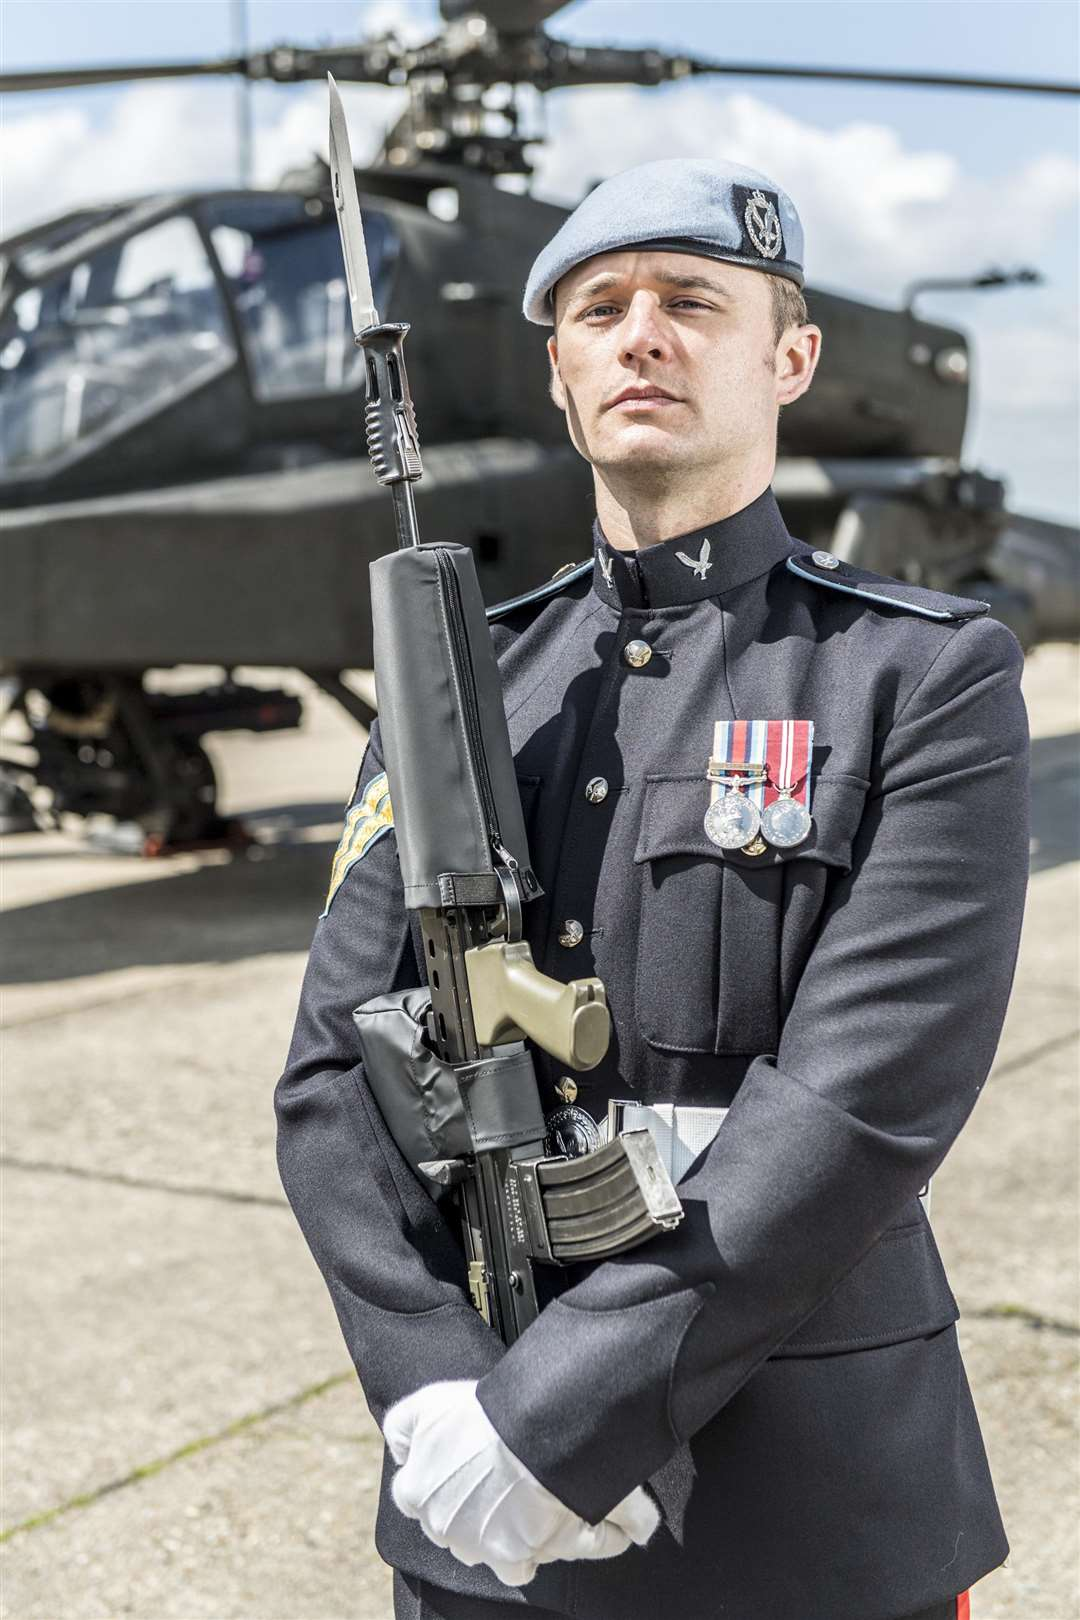 Corporal Stuart Armstrong, 27, from Glasgow, who's based at HQ Squadron, 3 Regiment Army Air Corps, Wattisham, stands proud in front of the Apache Attack Helicopter. Photographer:Corporal Ben Beale/ MoD Crown (1942067)